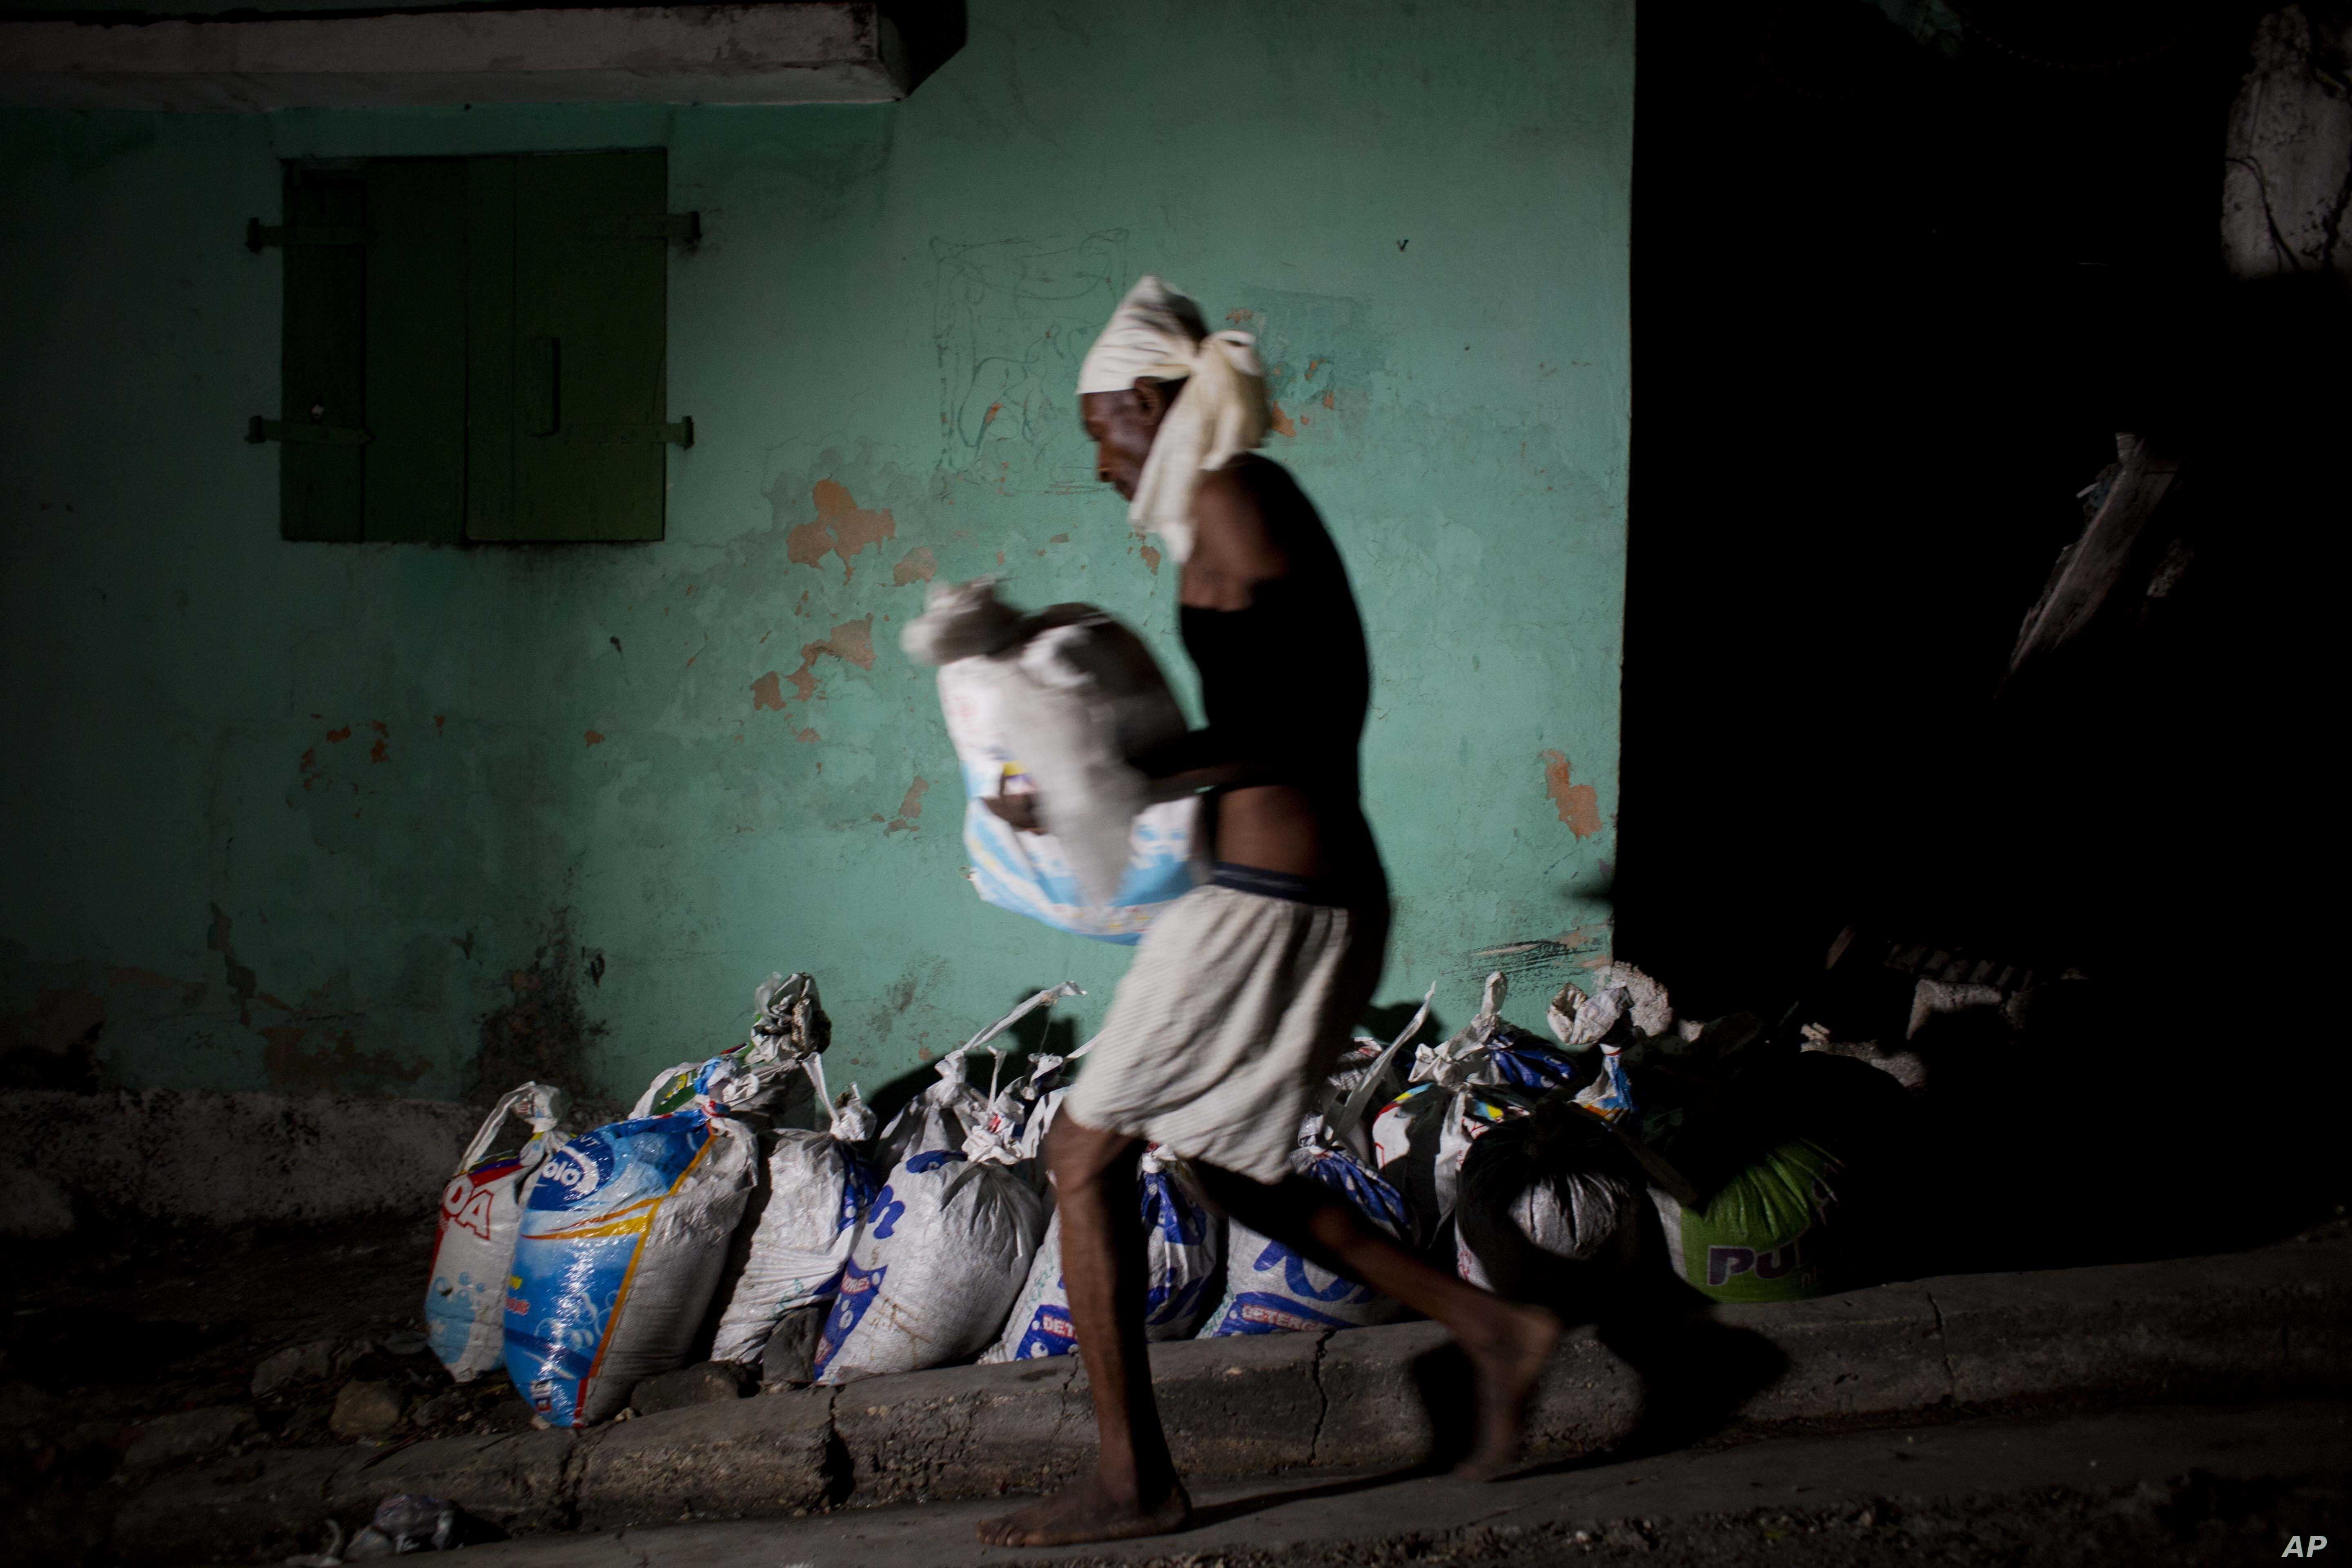 """FILE - A """"bayakou,"""" or human waste cleaner, carries a sack filled with human waste to be hauled away and dumped before sunrise, in Port-au-Prince, Haiti, Dec. 22, 2016."""